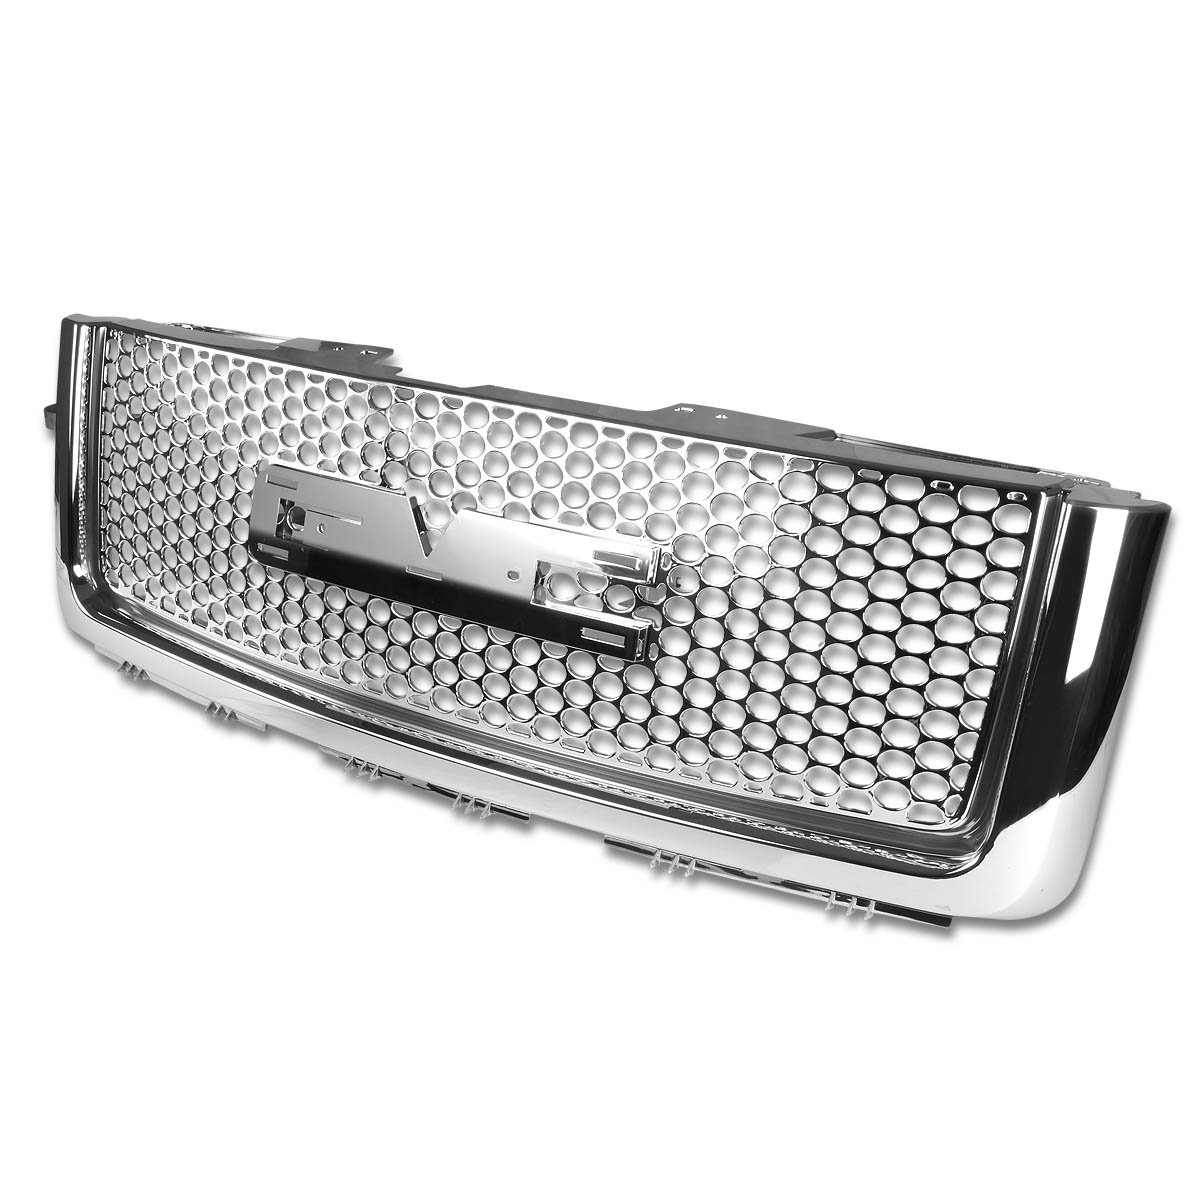 For GMC Sierra Denali ABS Plastic Round Mesh Front Bumper Grille (Chrome) - 2nd Gen GMT900/902 by Auto Dynasty